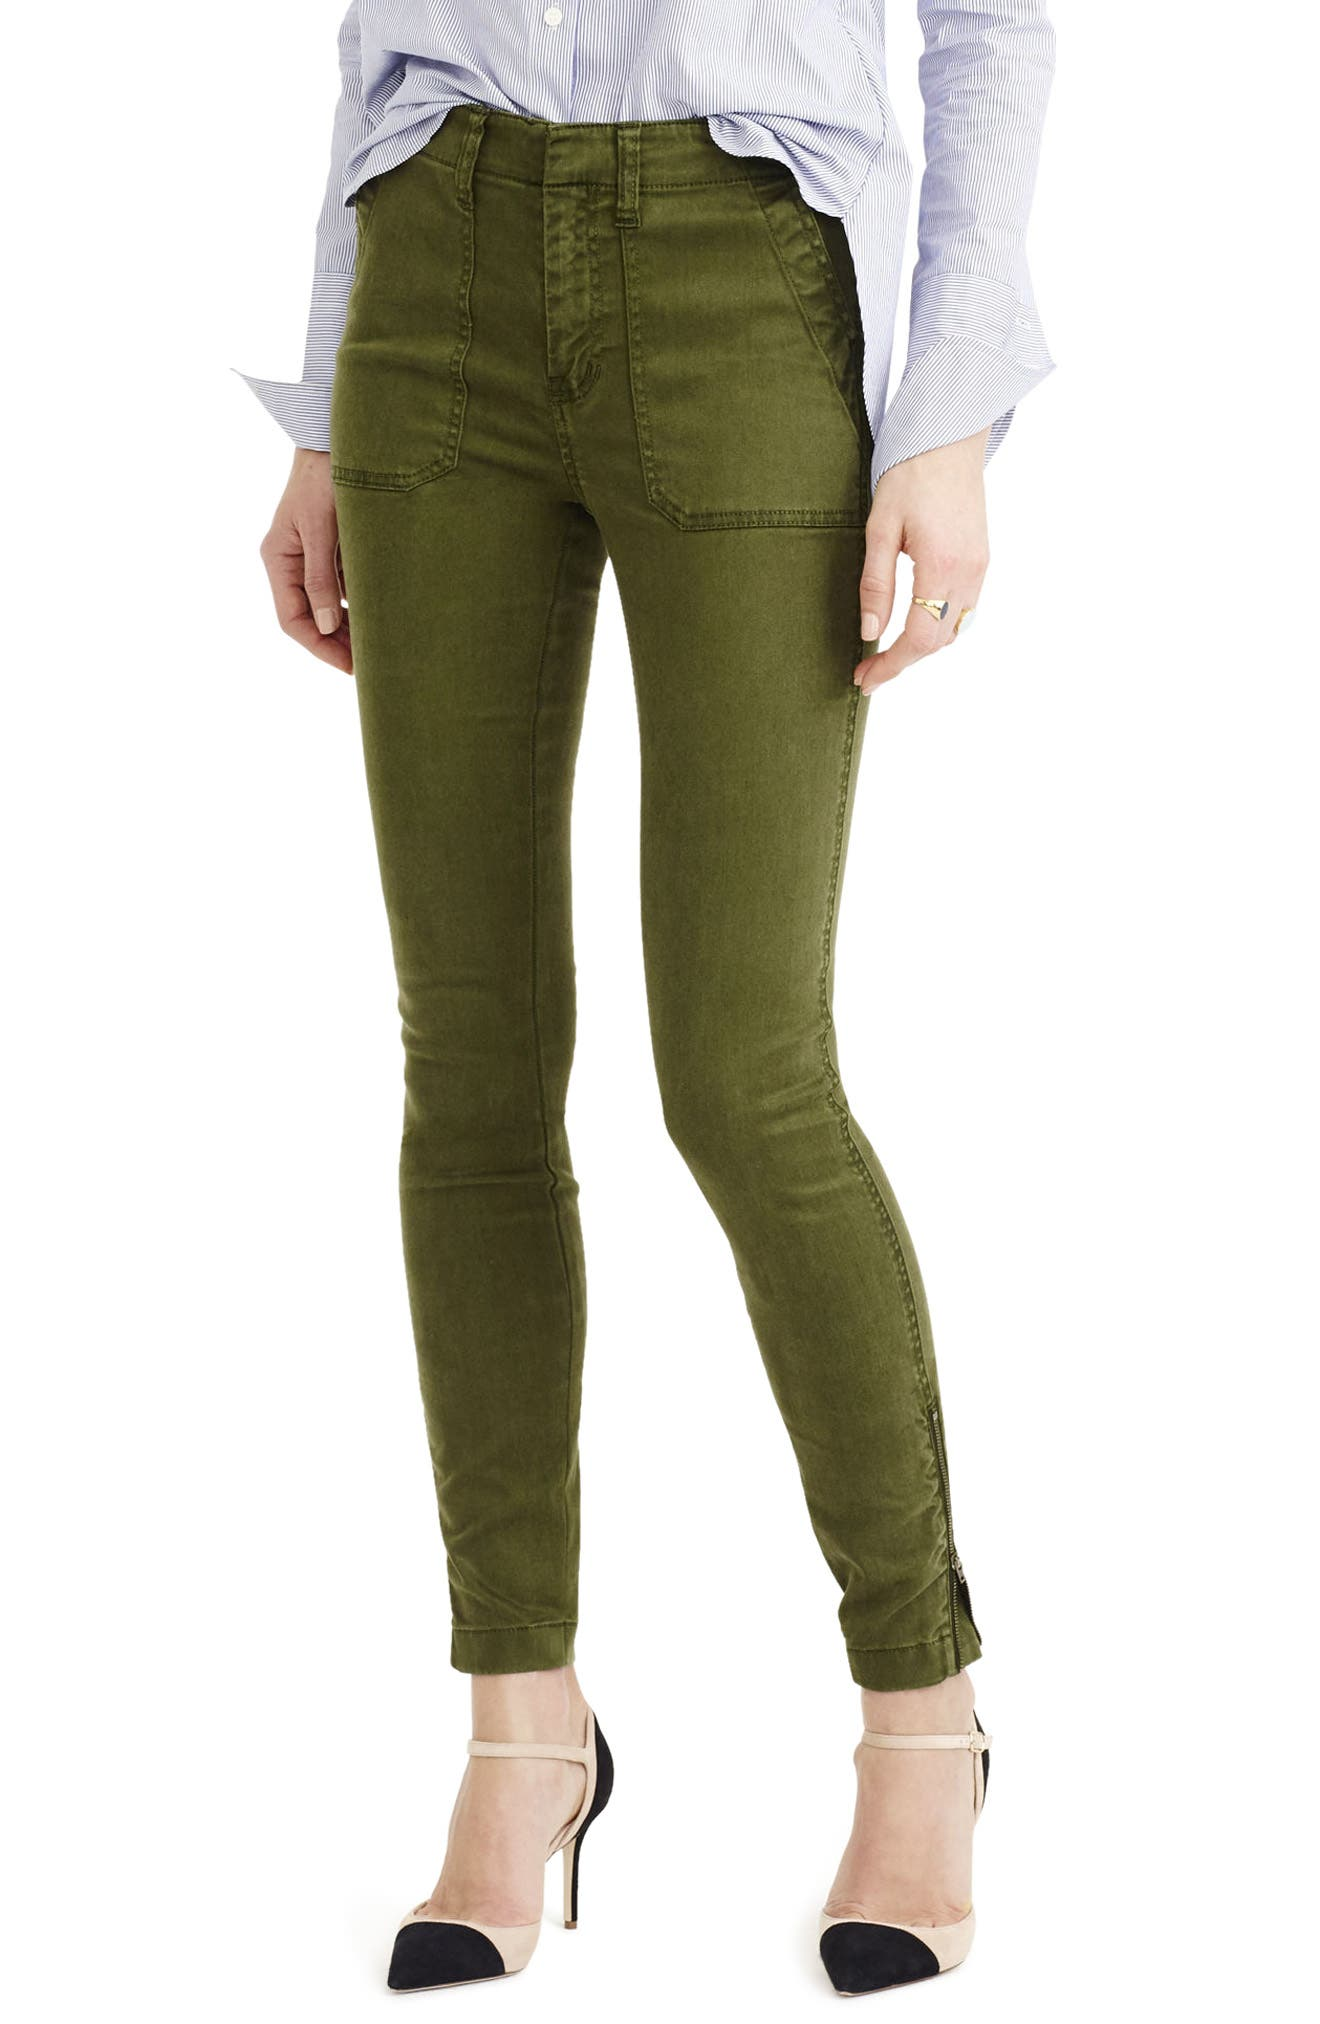 J. CREW J.Crew Zip Ankle Stretch Skinny Cargo Pants